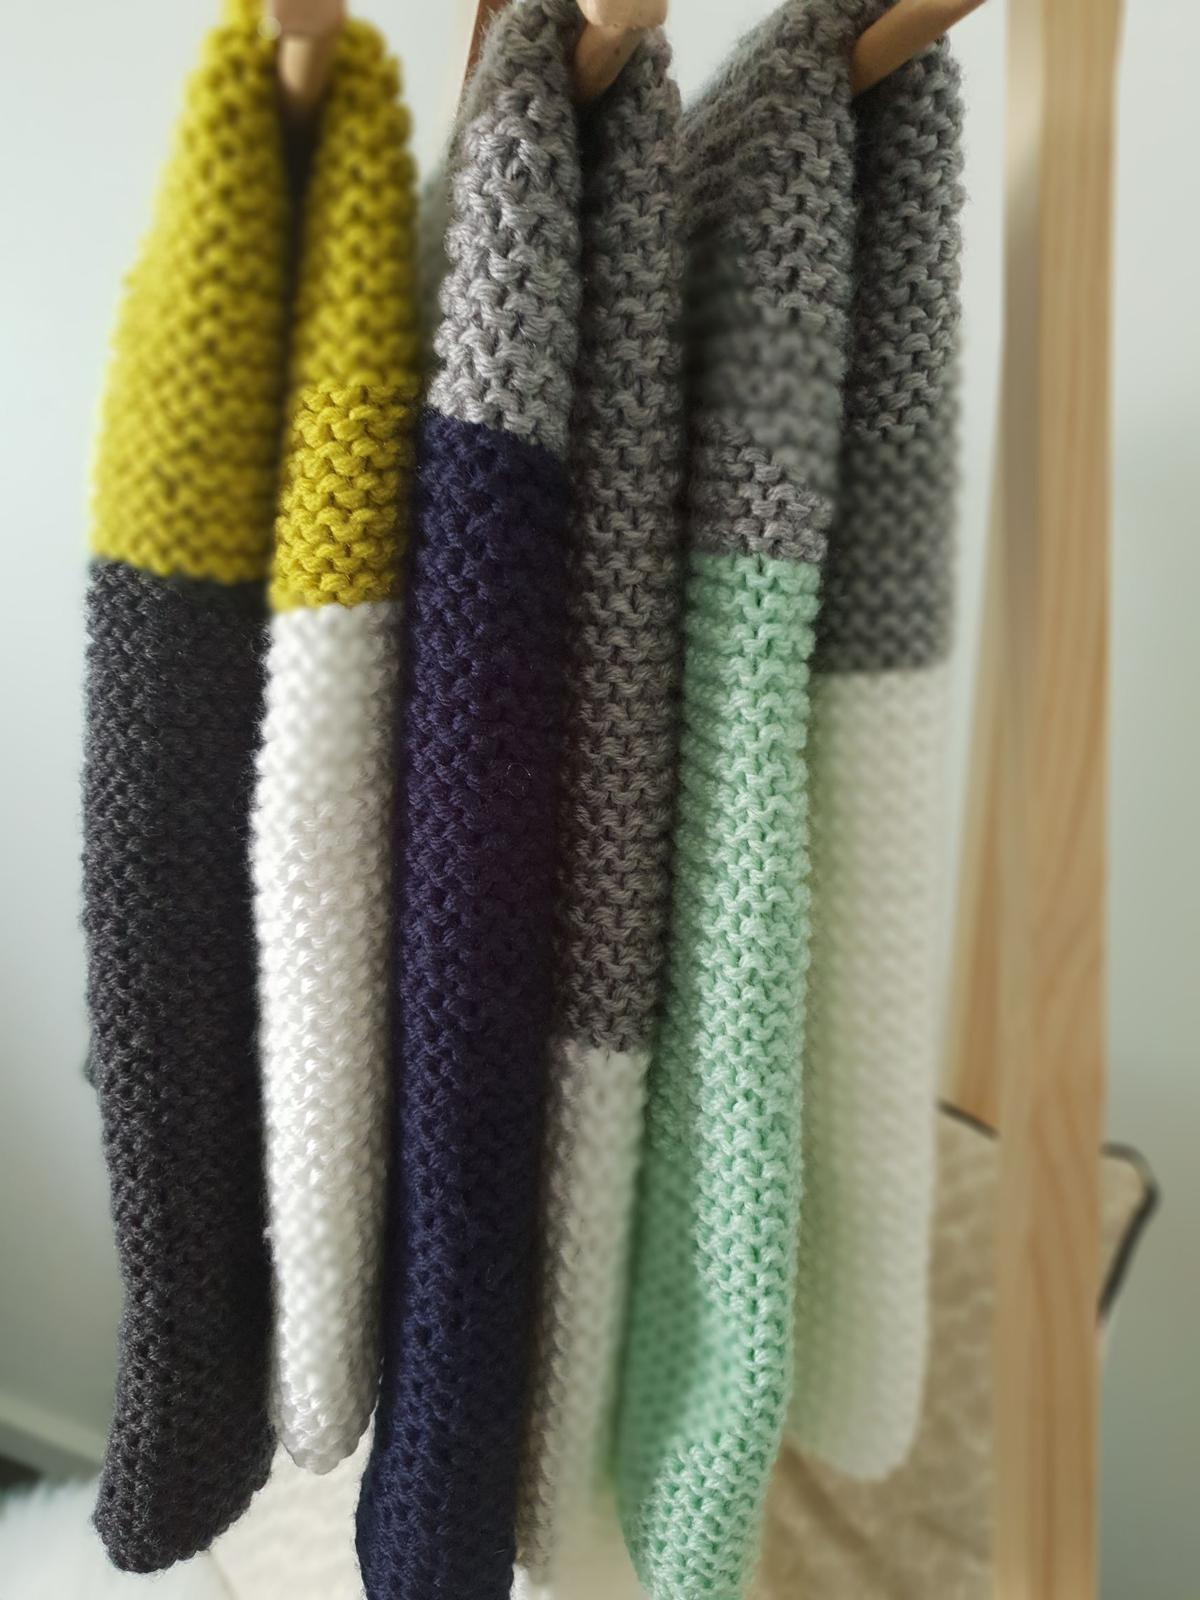 Tri-colour hand knitted blankets